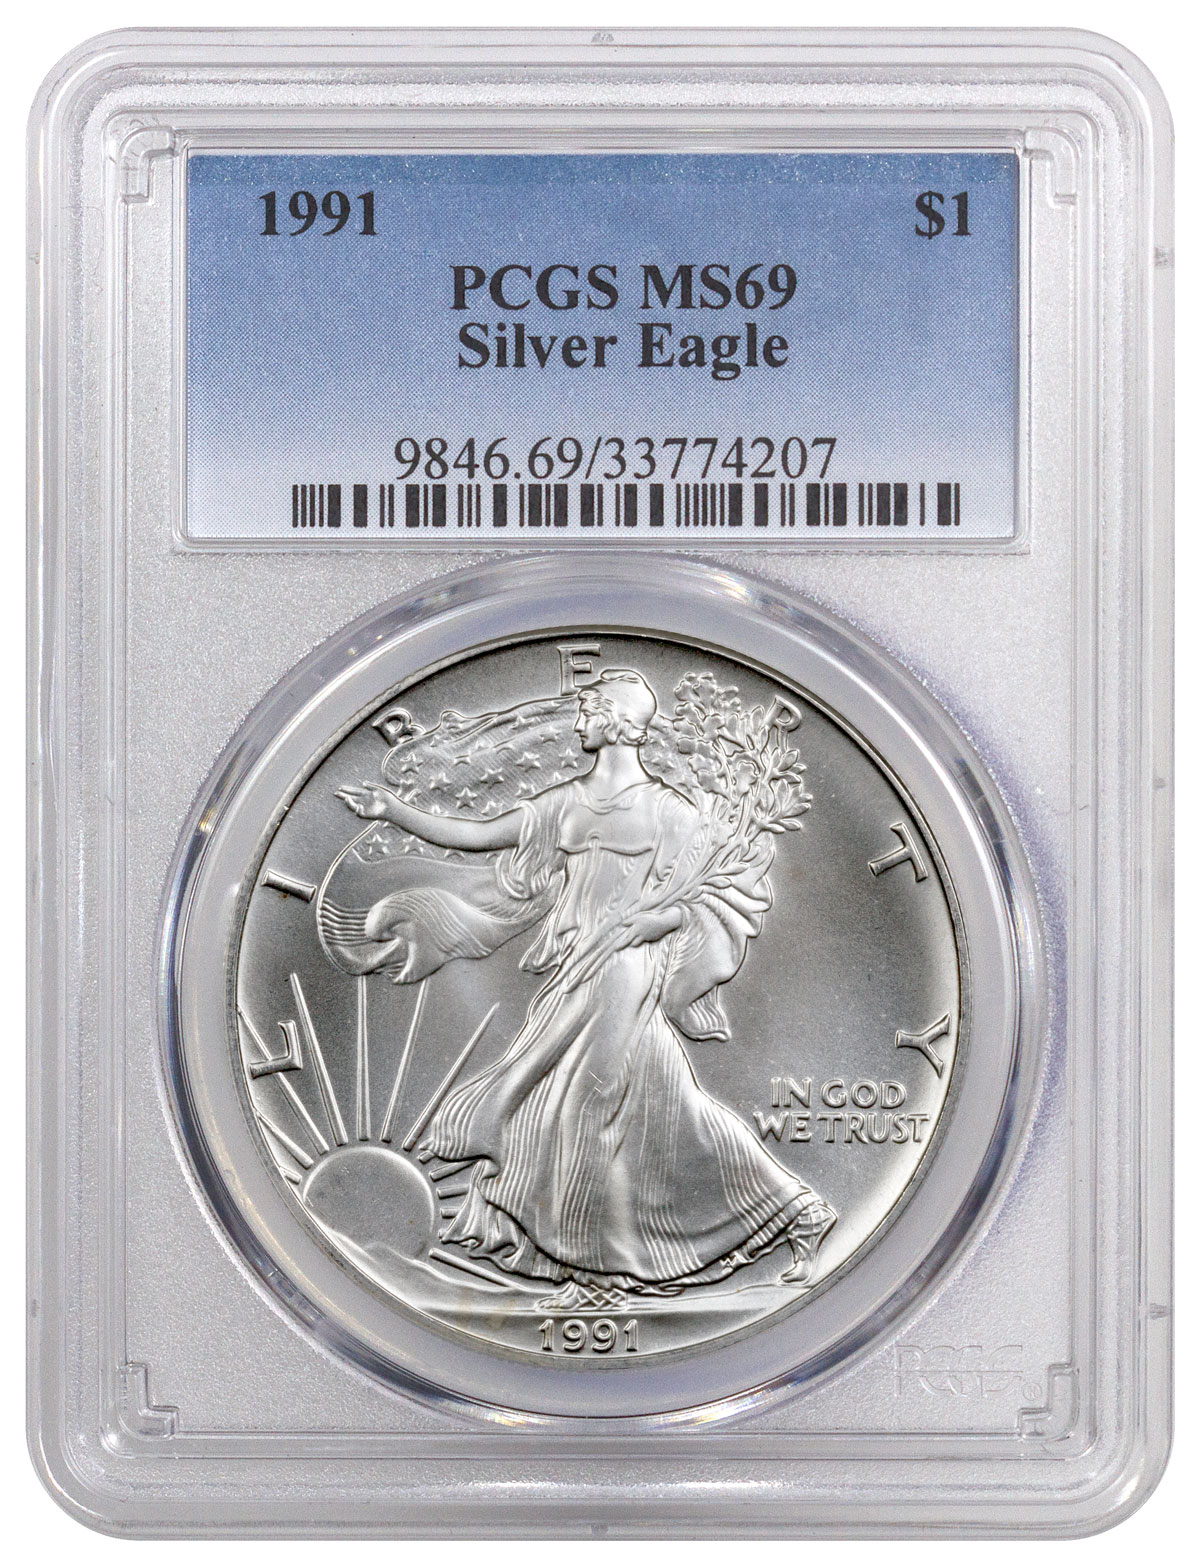 1991 American Silver Eagle Pcgs Ms69 Moderncoinmart